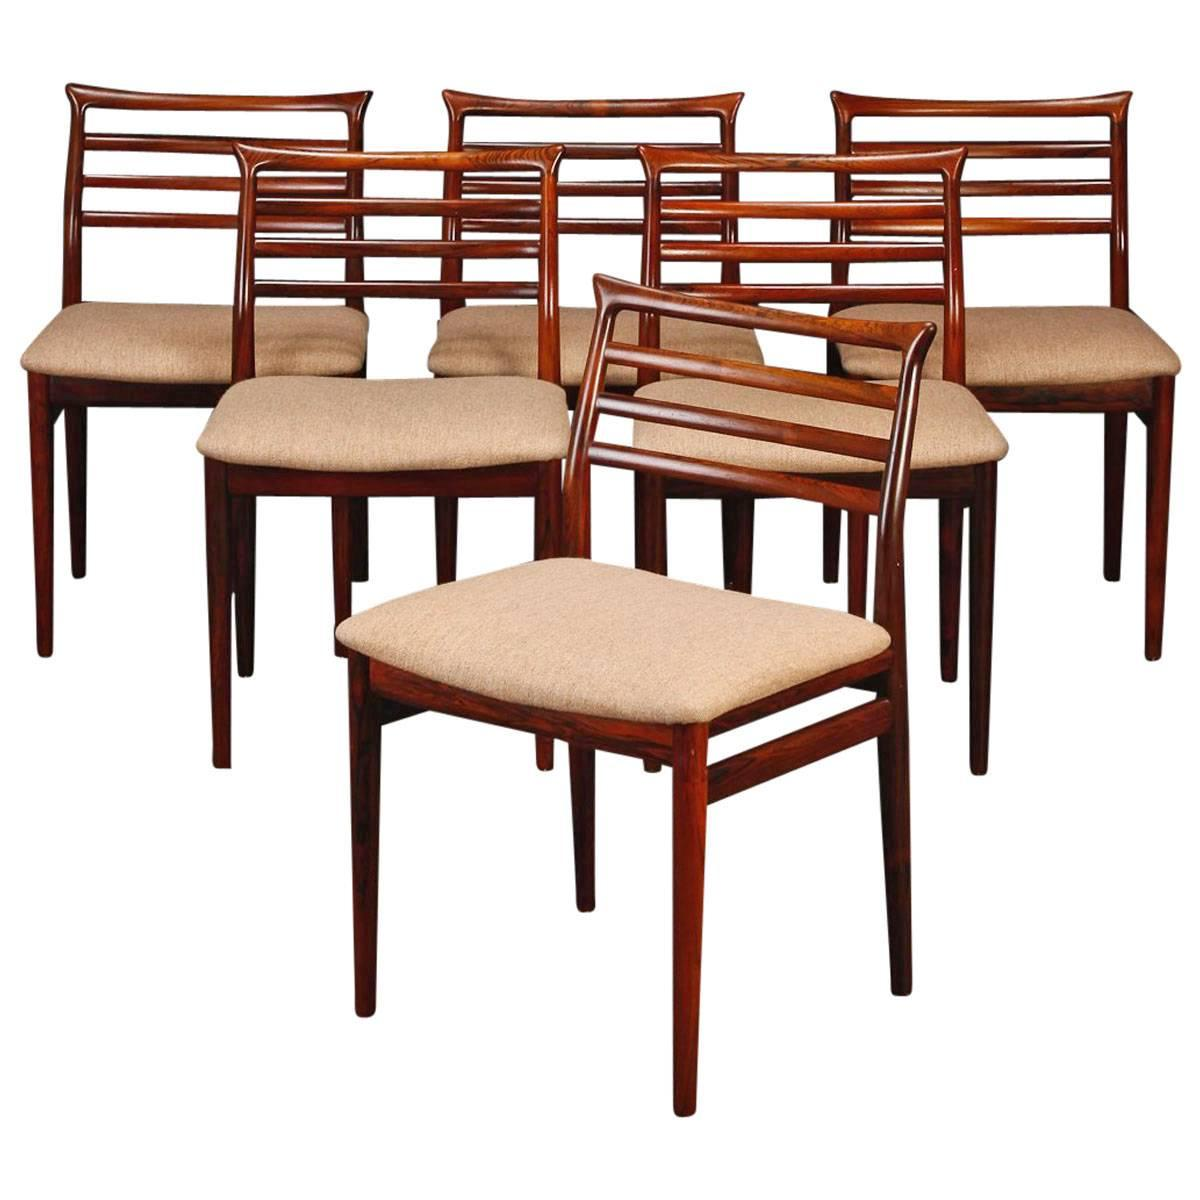 Set of Six Solid Hardwood Dining Chairs by Erling Torvits